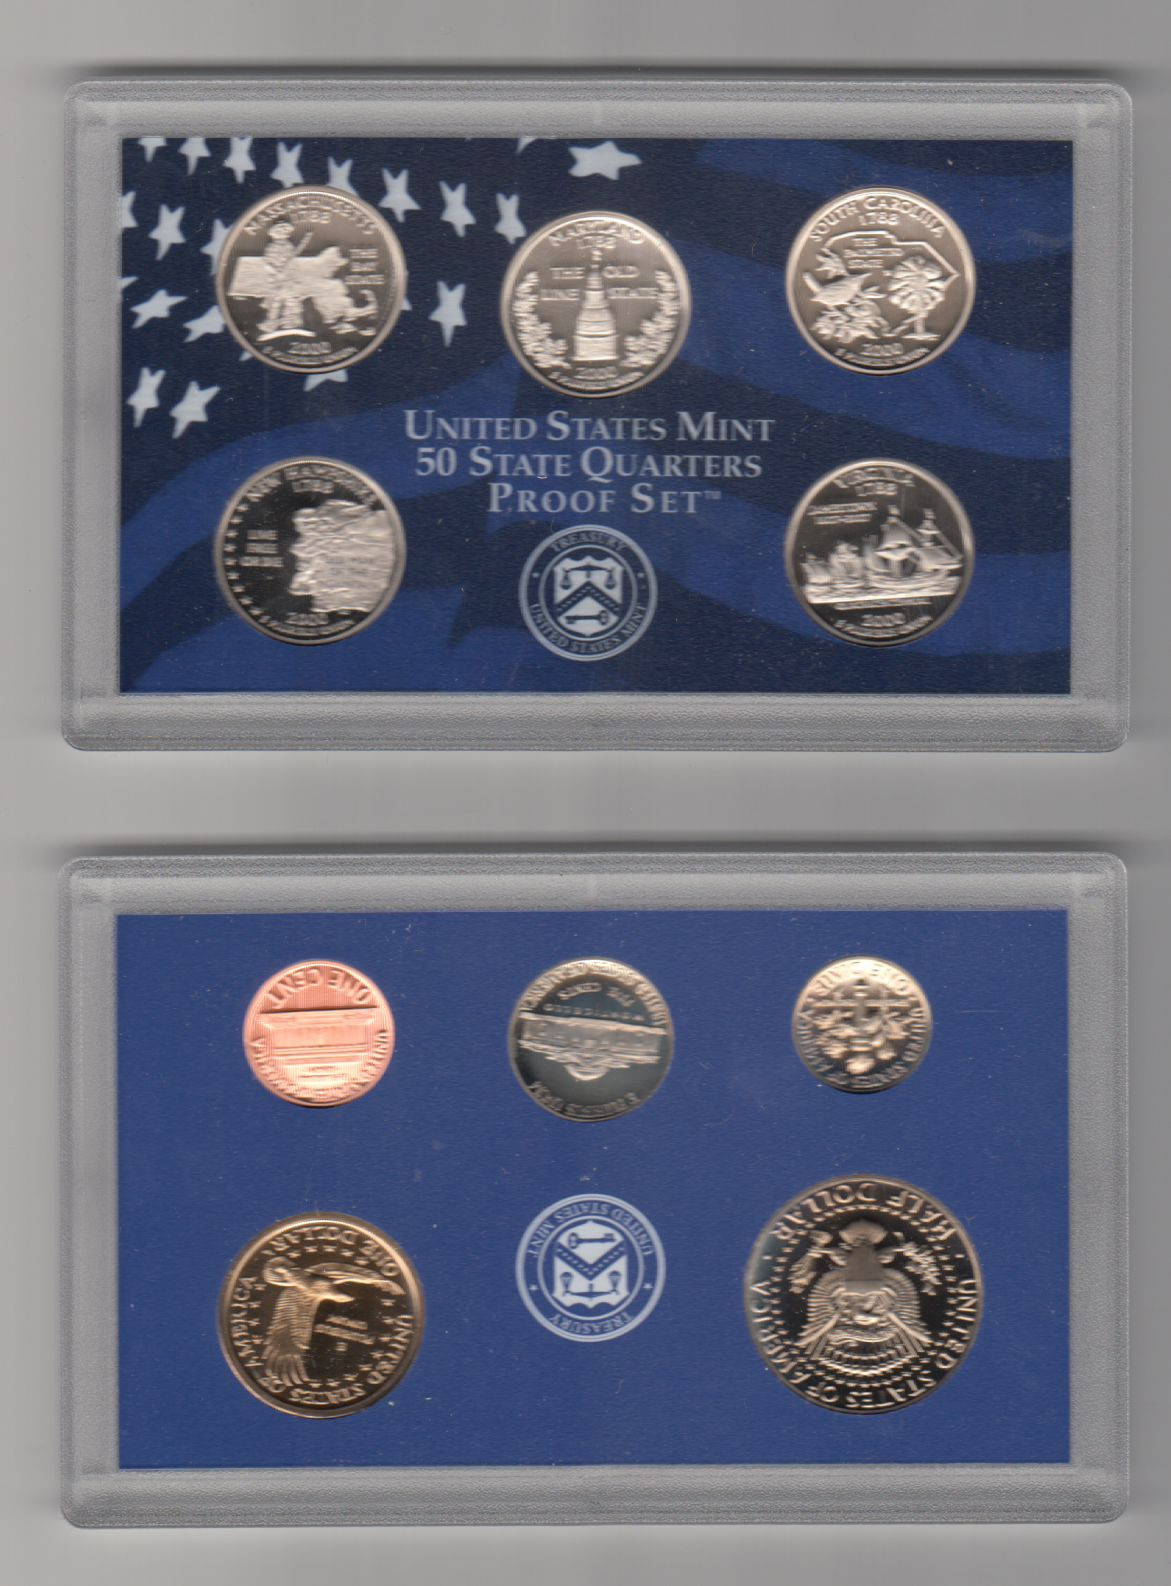 Awesome 10 Coins 50 State Quarters Proof Set Us Mint 2000 Us State Quarter Collection Of Charming 49 Ideas Us State Quarter Collection